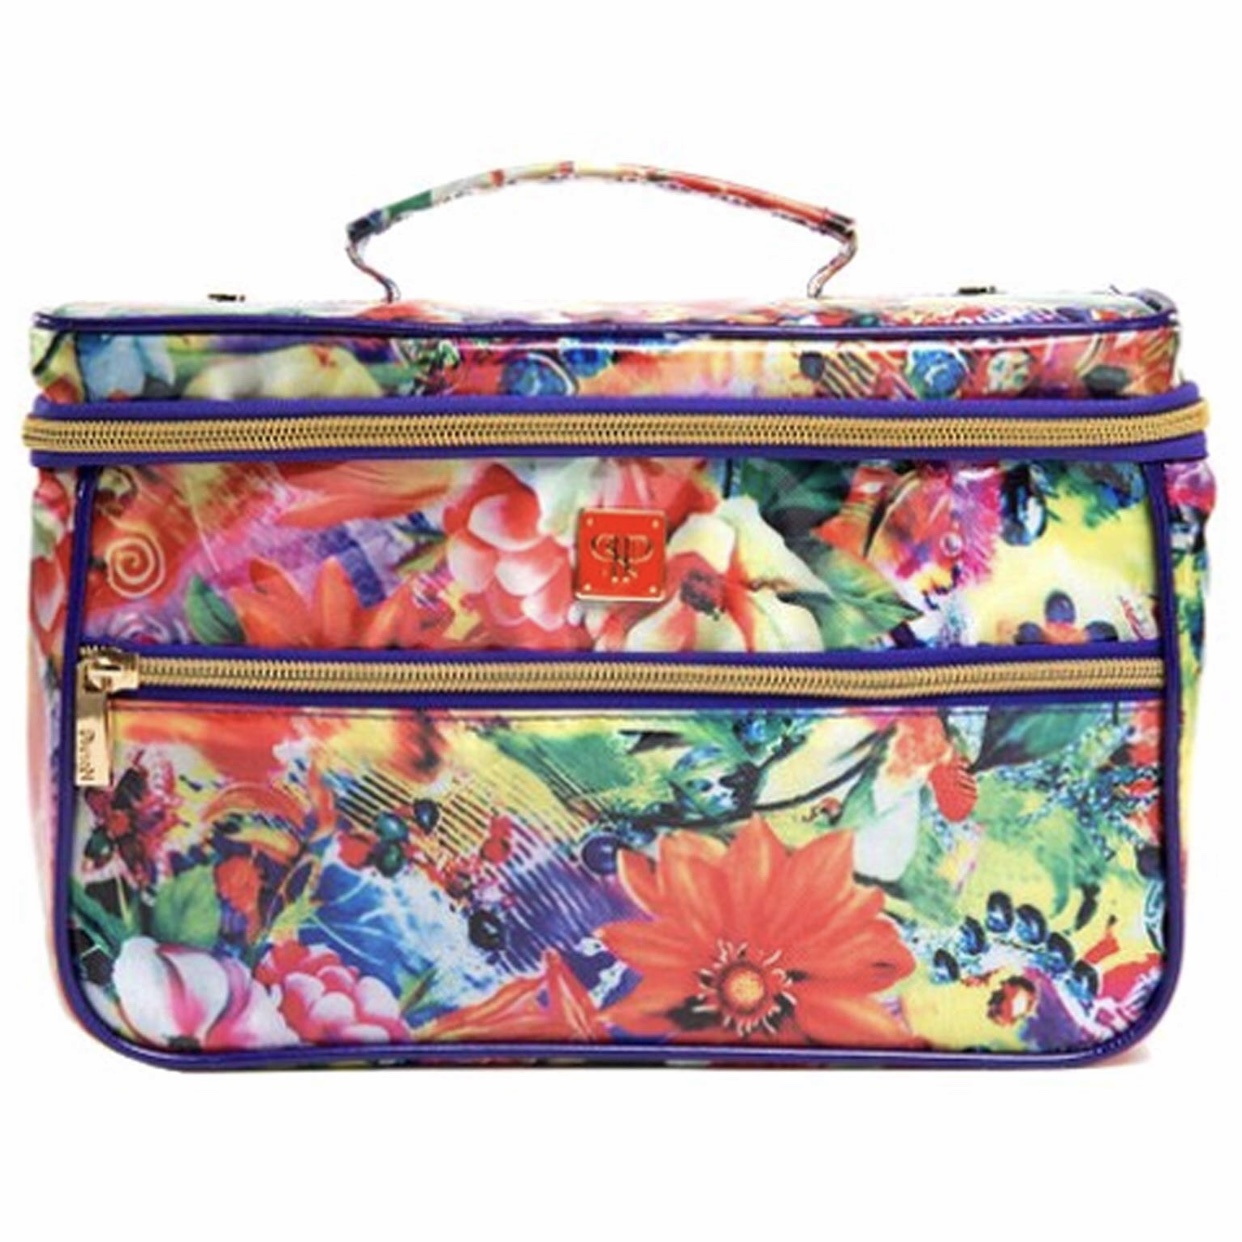 PurseN Tiara Large Vacationer Jewelry Case in Paradise Floral